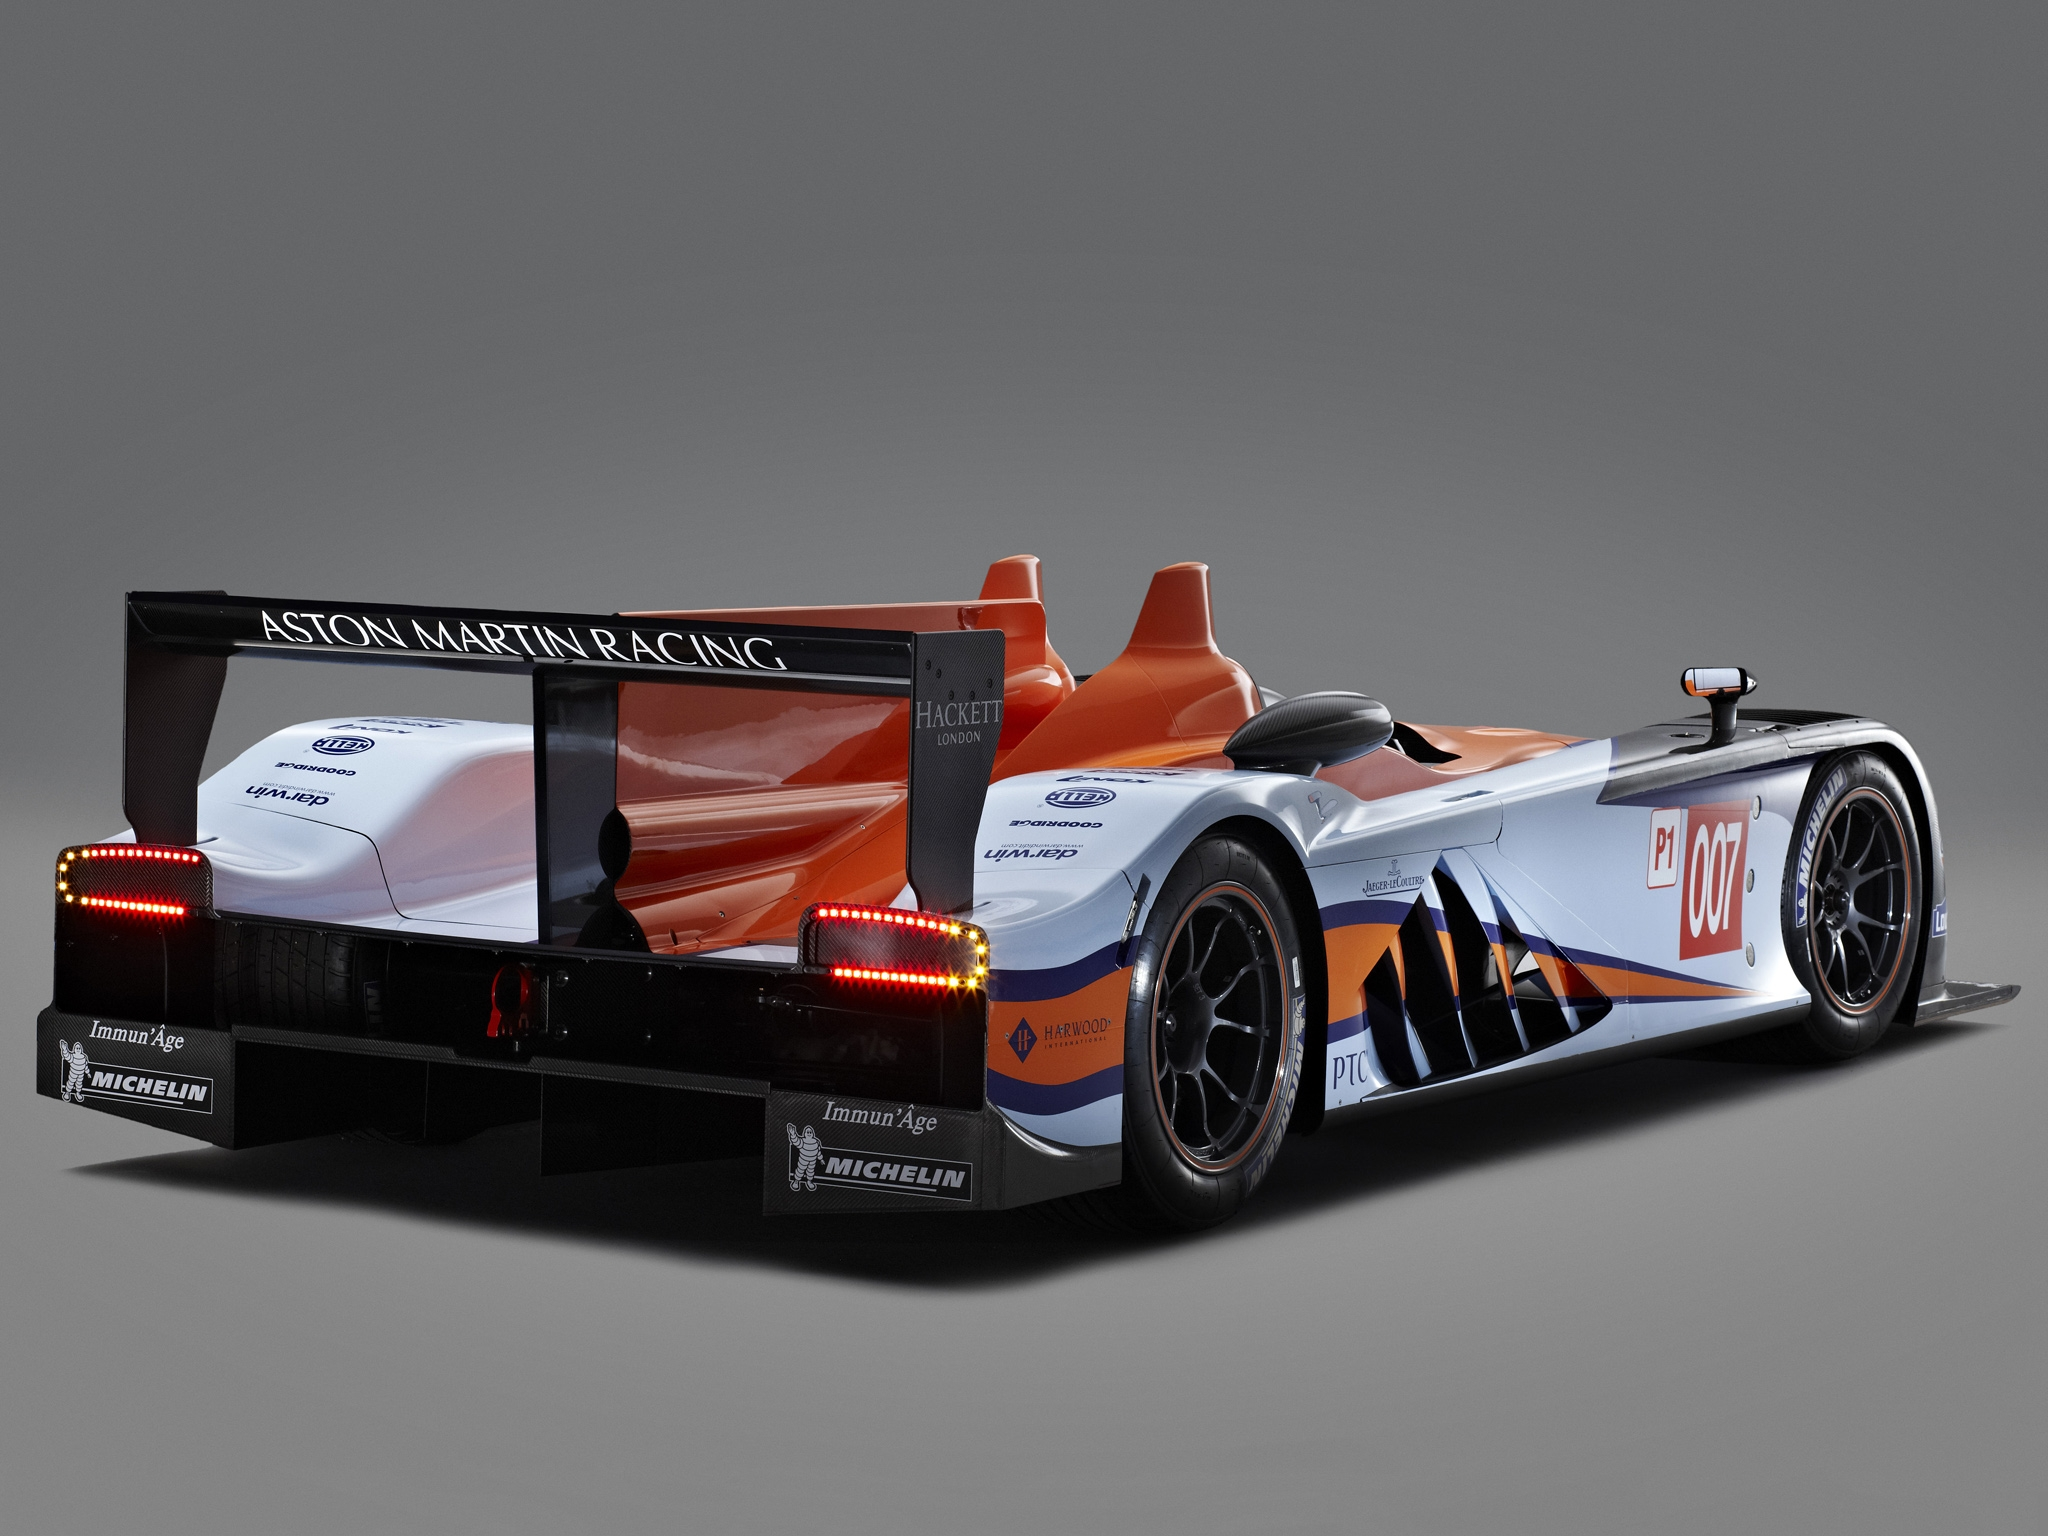 128473 free wallpaper 1125x2436 for phone, download images Auto, Sports, Aston Martin, Cars, Back View, Rear View, 2011, Lmp1, Amr-One 1125x2436 for mobile